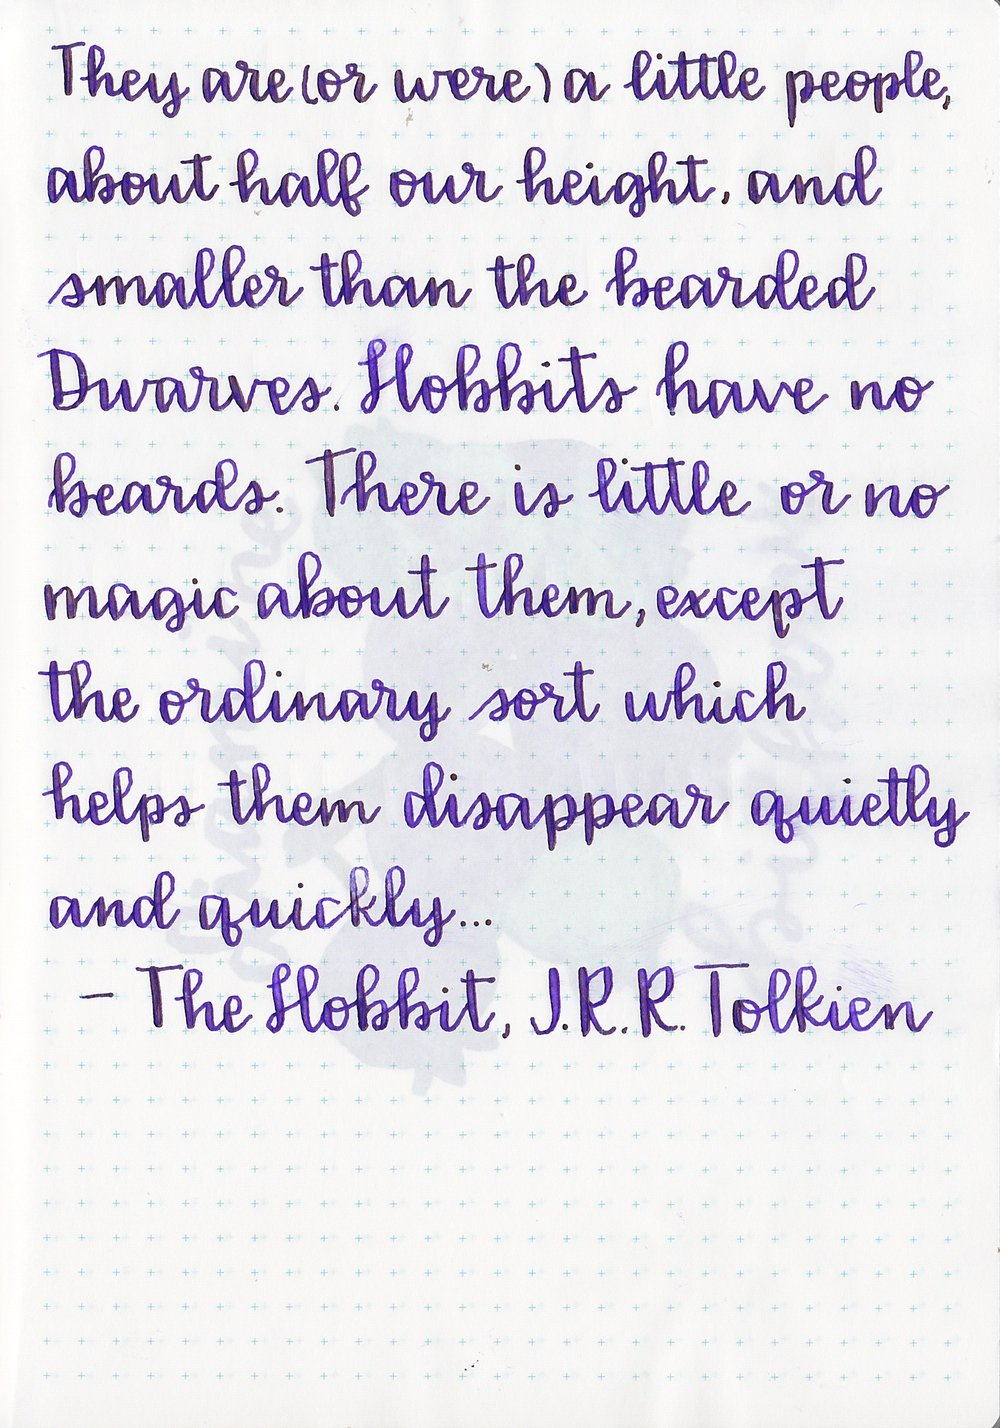 Longer writing... - I've started using a portion of The Hobbit for my writing examples, I'm sure by the time I review all of the inks I want to I'll have written out the entire book. I used a Noodler's Ahab for this writing, on Tomoe River paper. The ink showed sheen on every word I wrote.